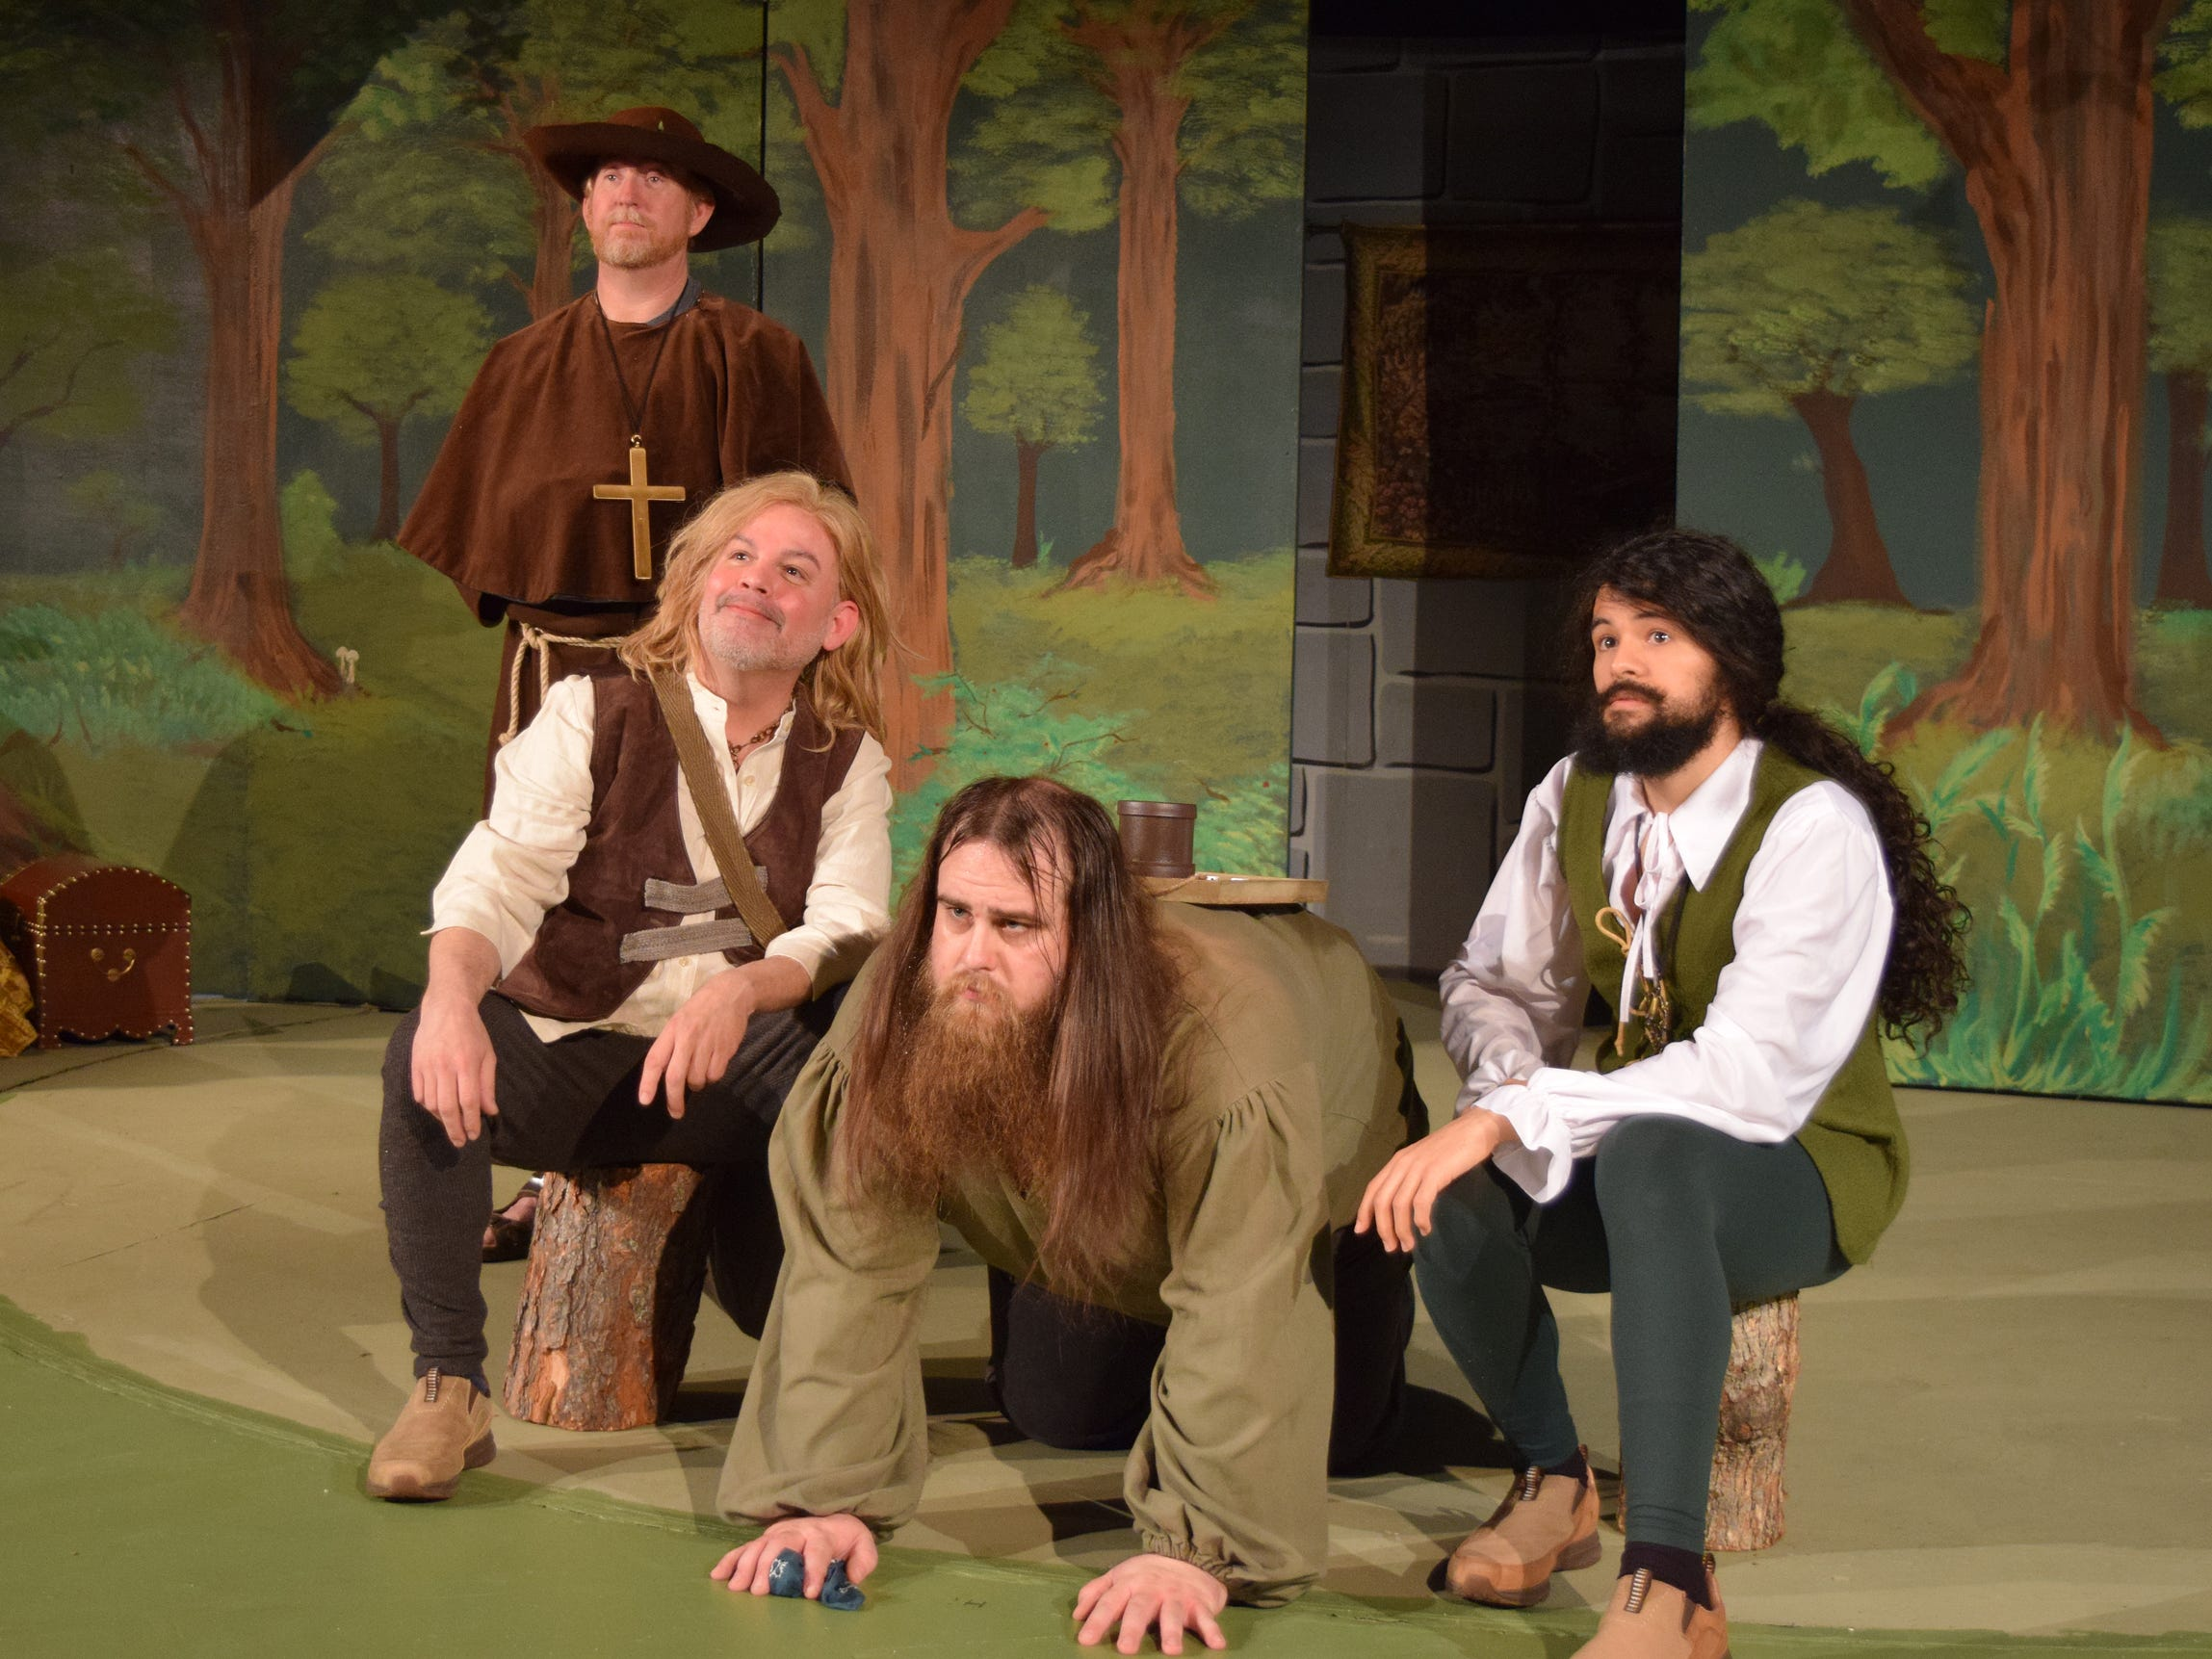 """Robin Hood's Merry Men contemplate justice in a scene from """"The Somewhat True Tale of Robin Hood."""" The comedy opens Friday at Riverfront Playhouse."""